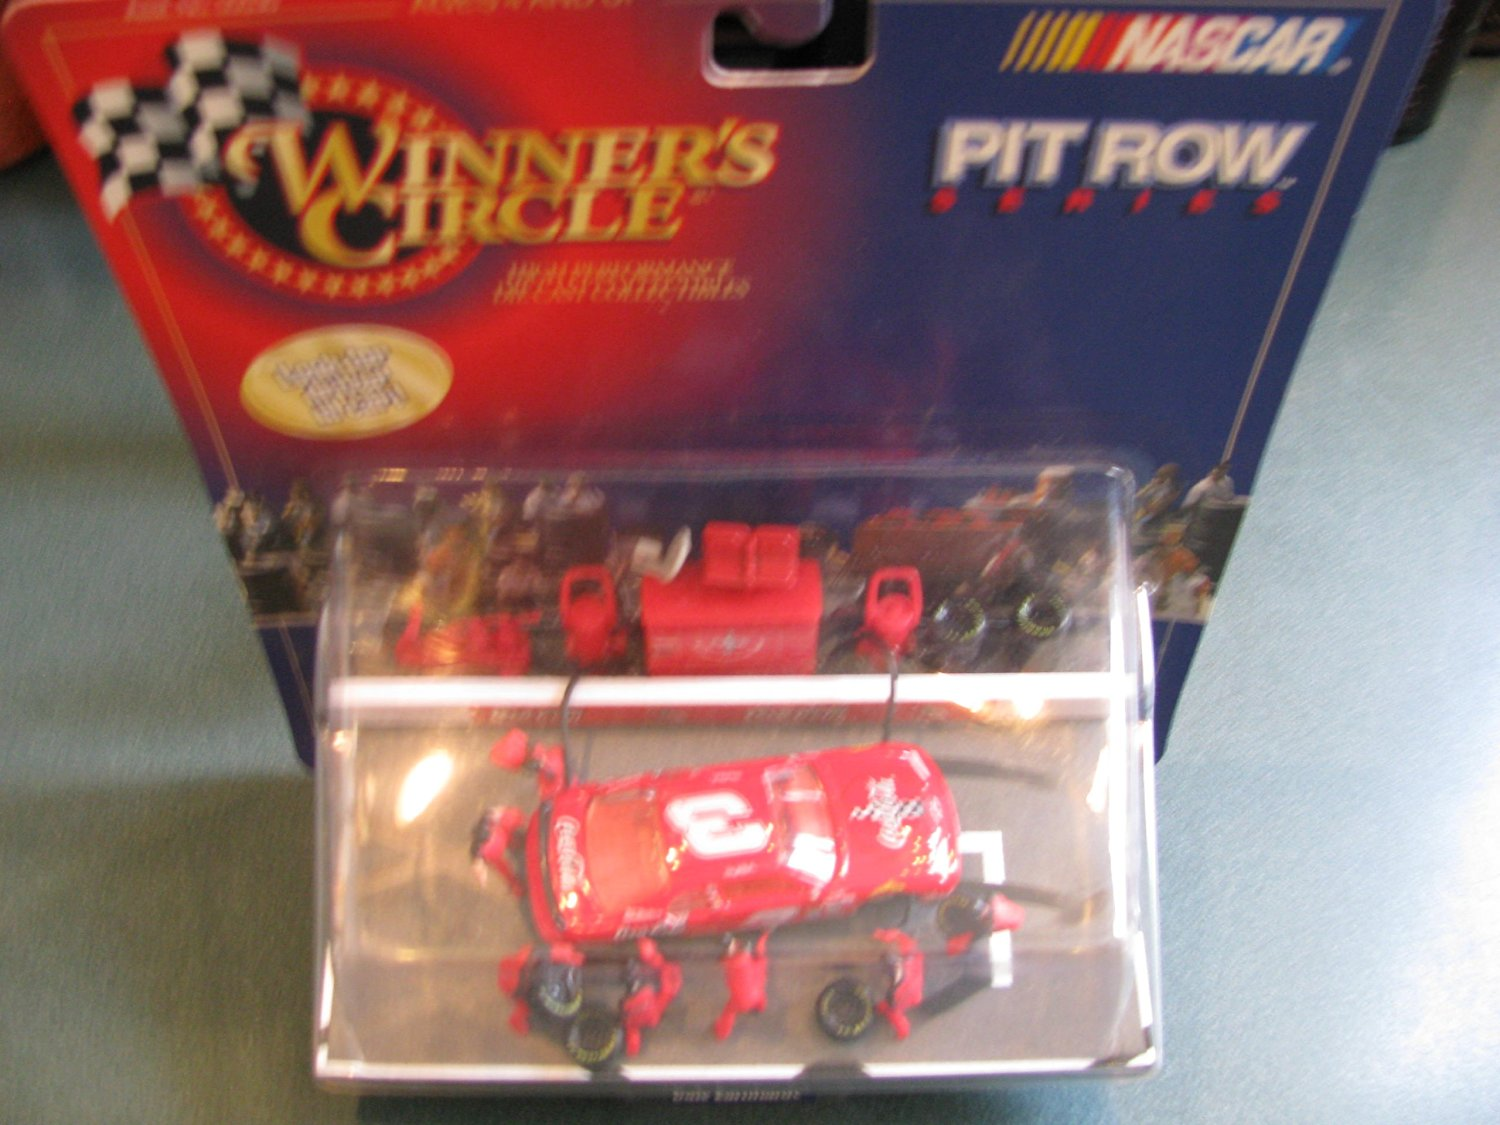 Dale Earnhardt Sr #3 Red Coca Cola 1998 Monte Carlo 1/64 Scale Diecast Pitroad Pit Row Scene Series 1st Head to Head Race With Dale Jr Motegi Japan Winners Circle